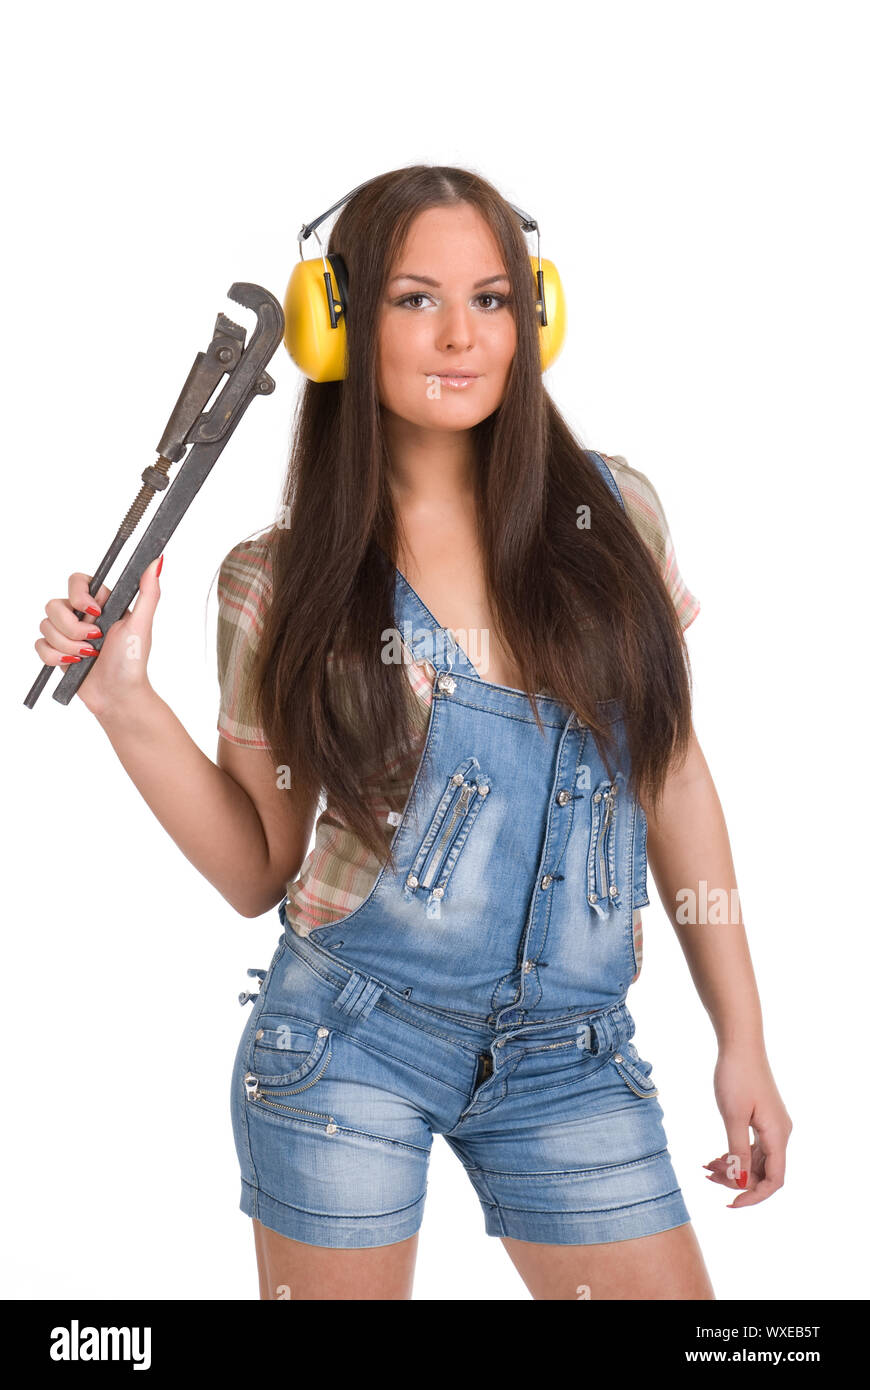 Young woman holding big wrench Stock Photo